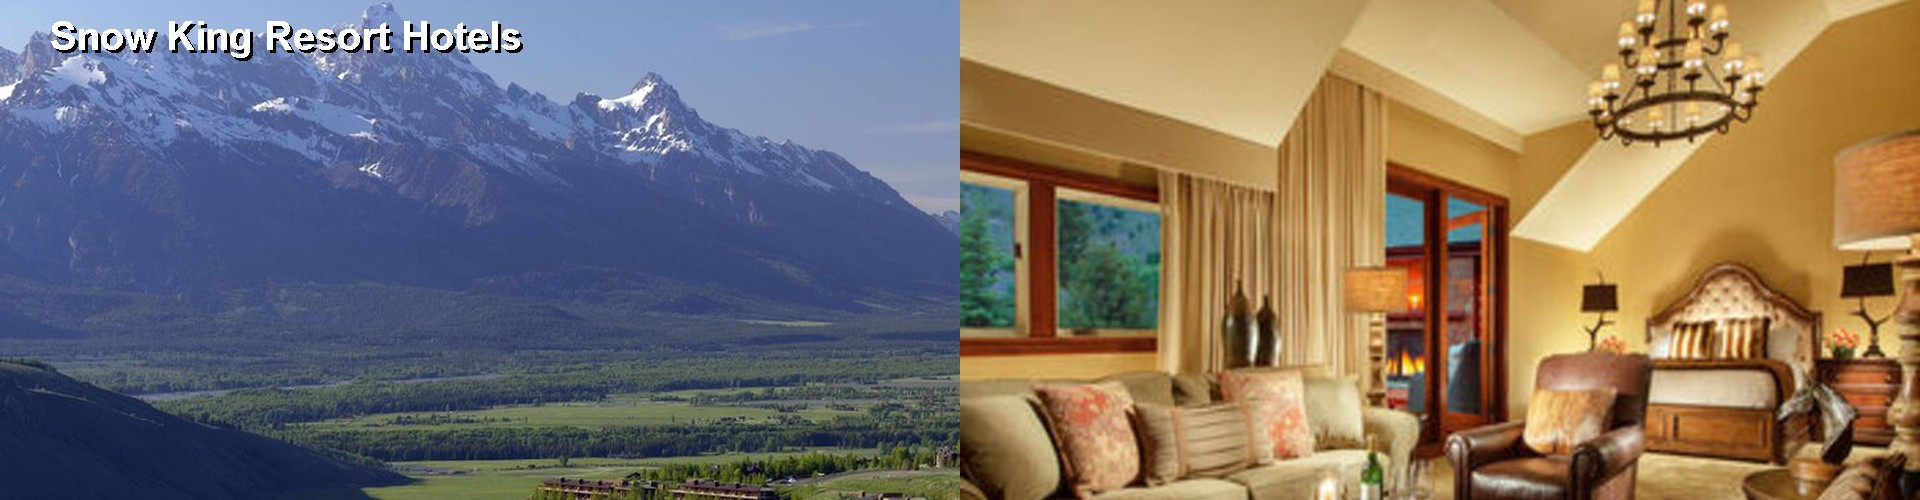 5 Best Hotels near Snow King Resort